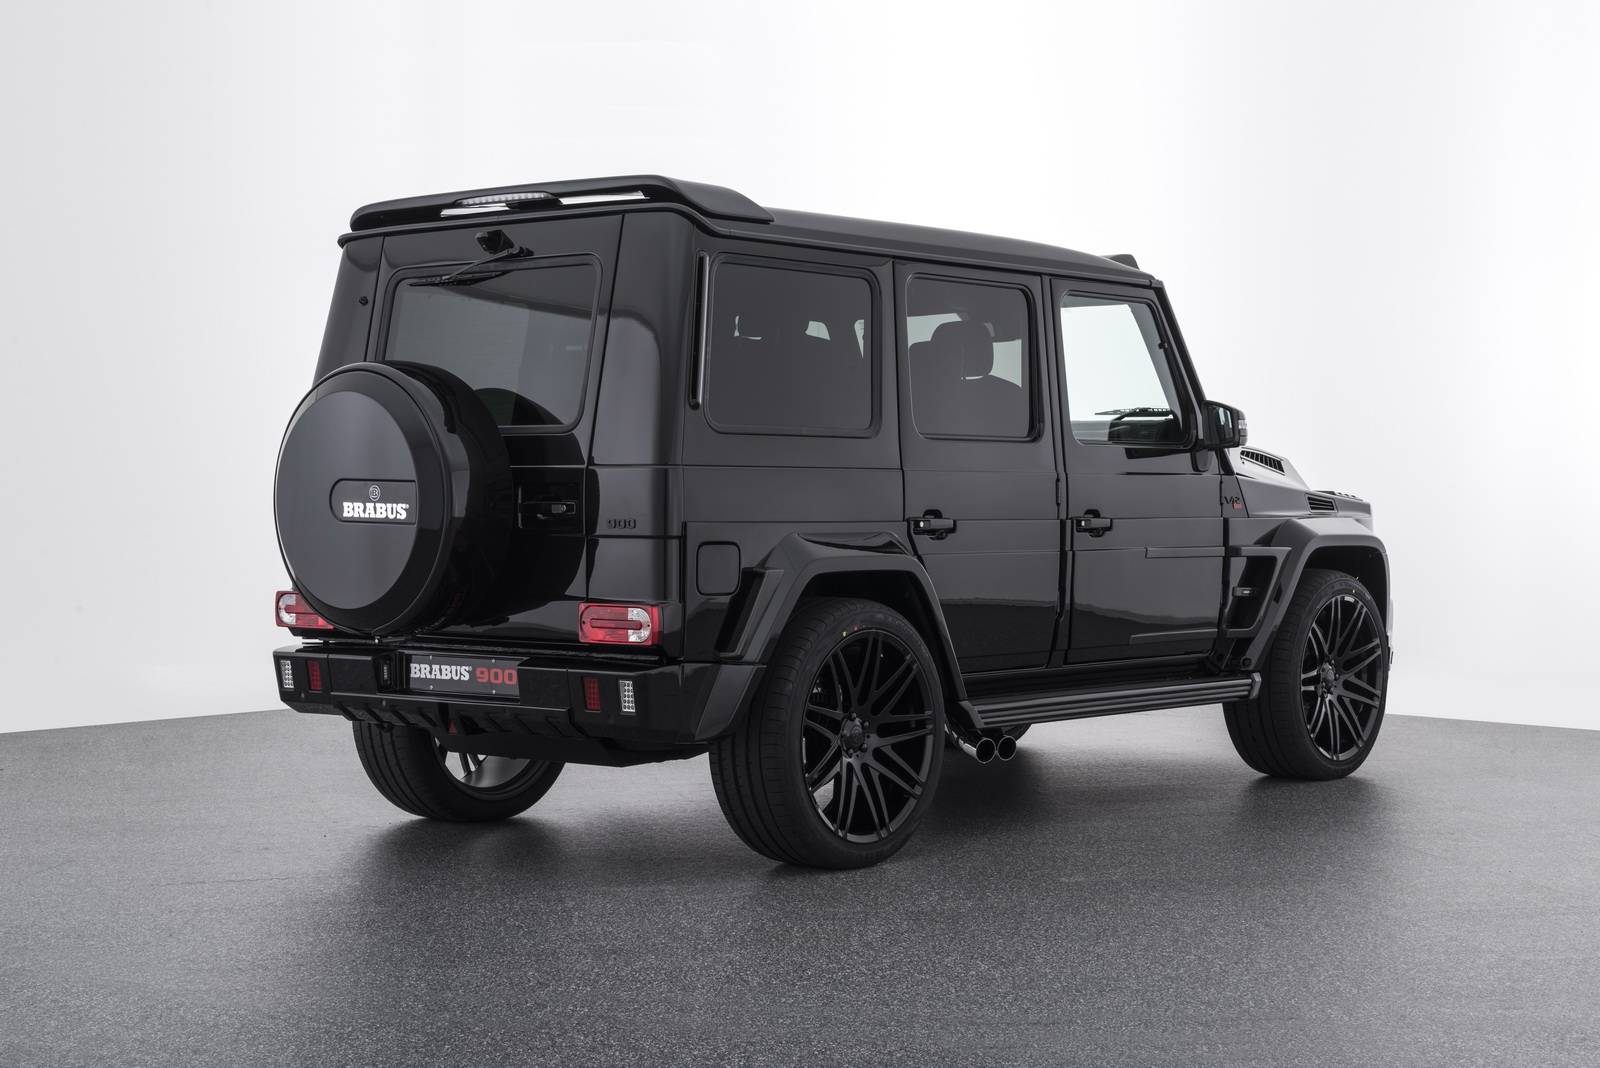 official brabus 900 g65 amg 1 of 10 666 000 each gtspirit. Black Bedroom Furniture Sets. Home Design Ideas